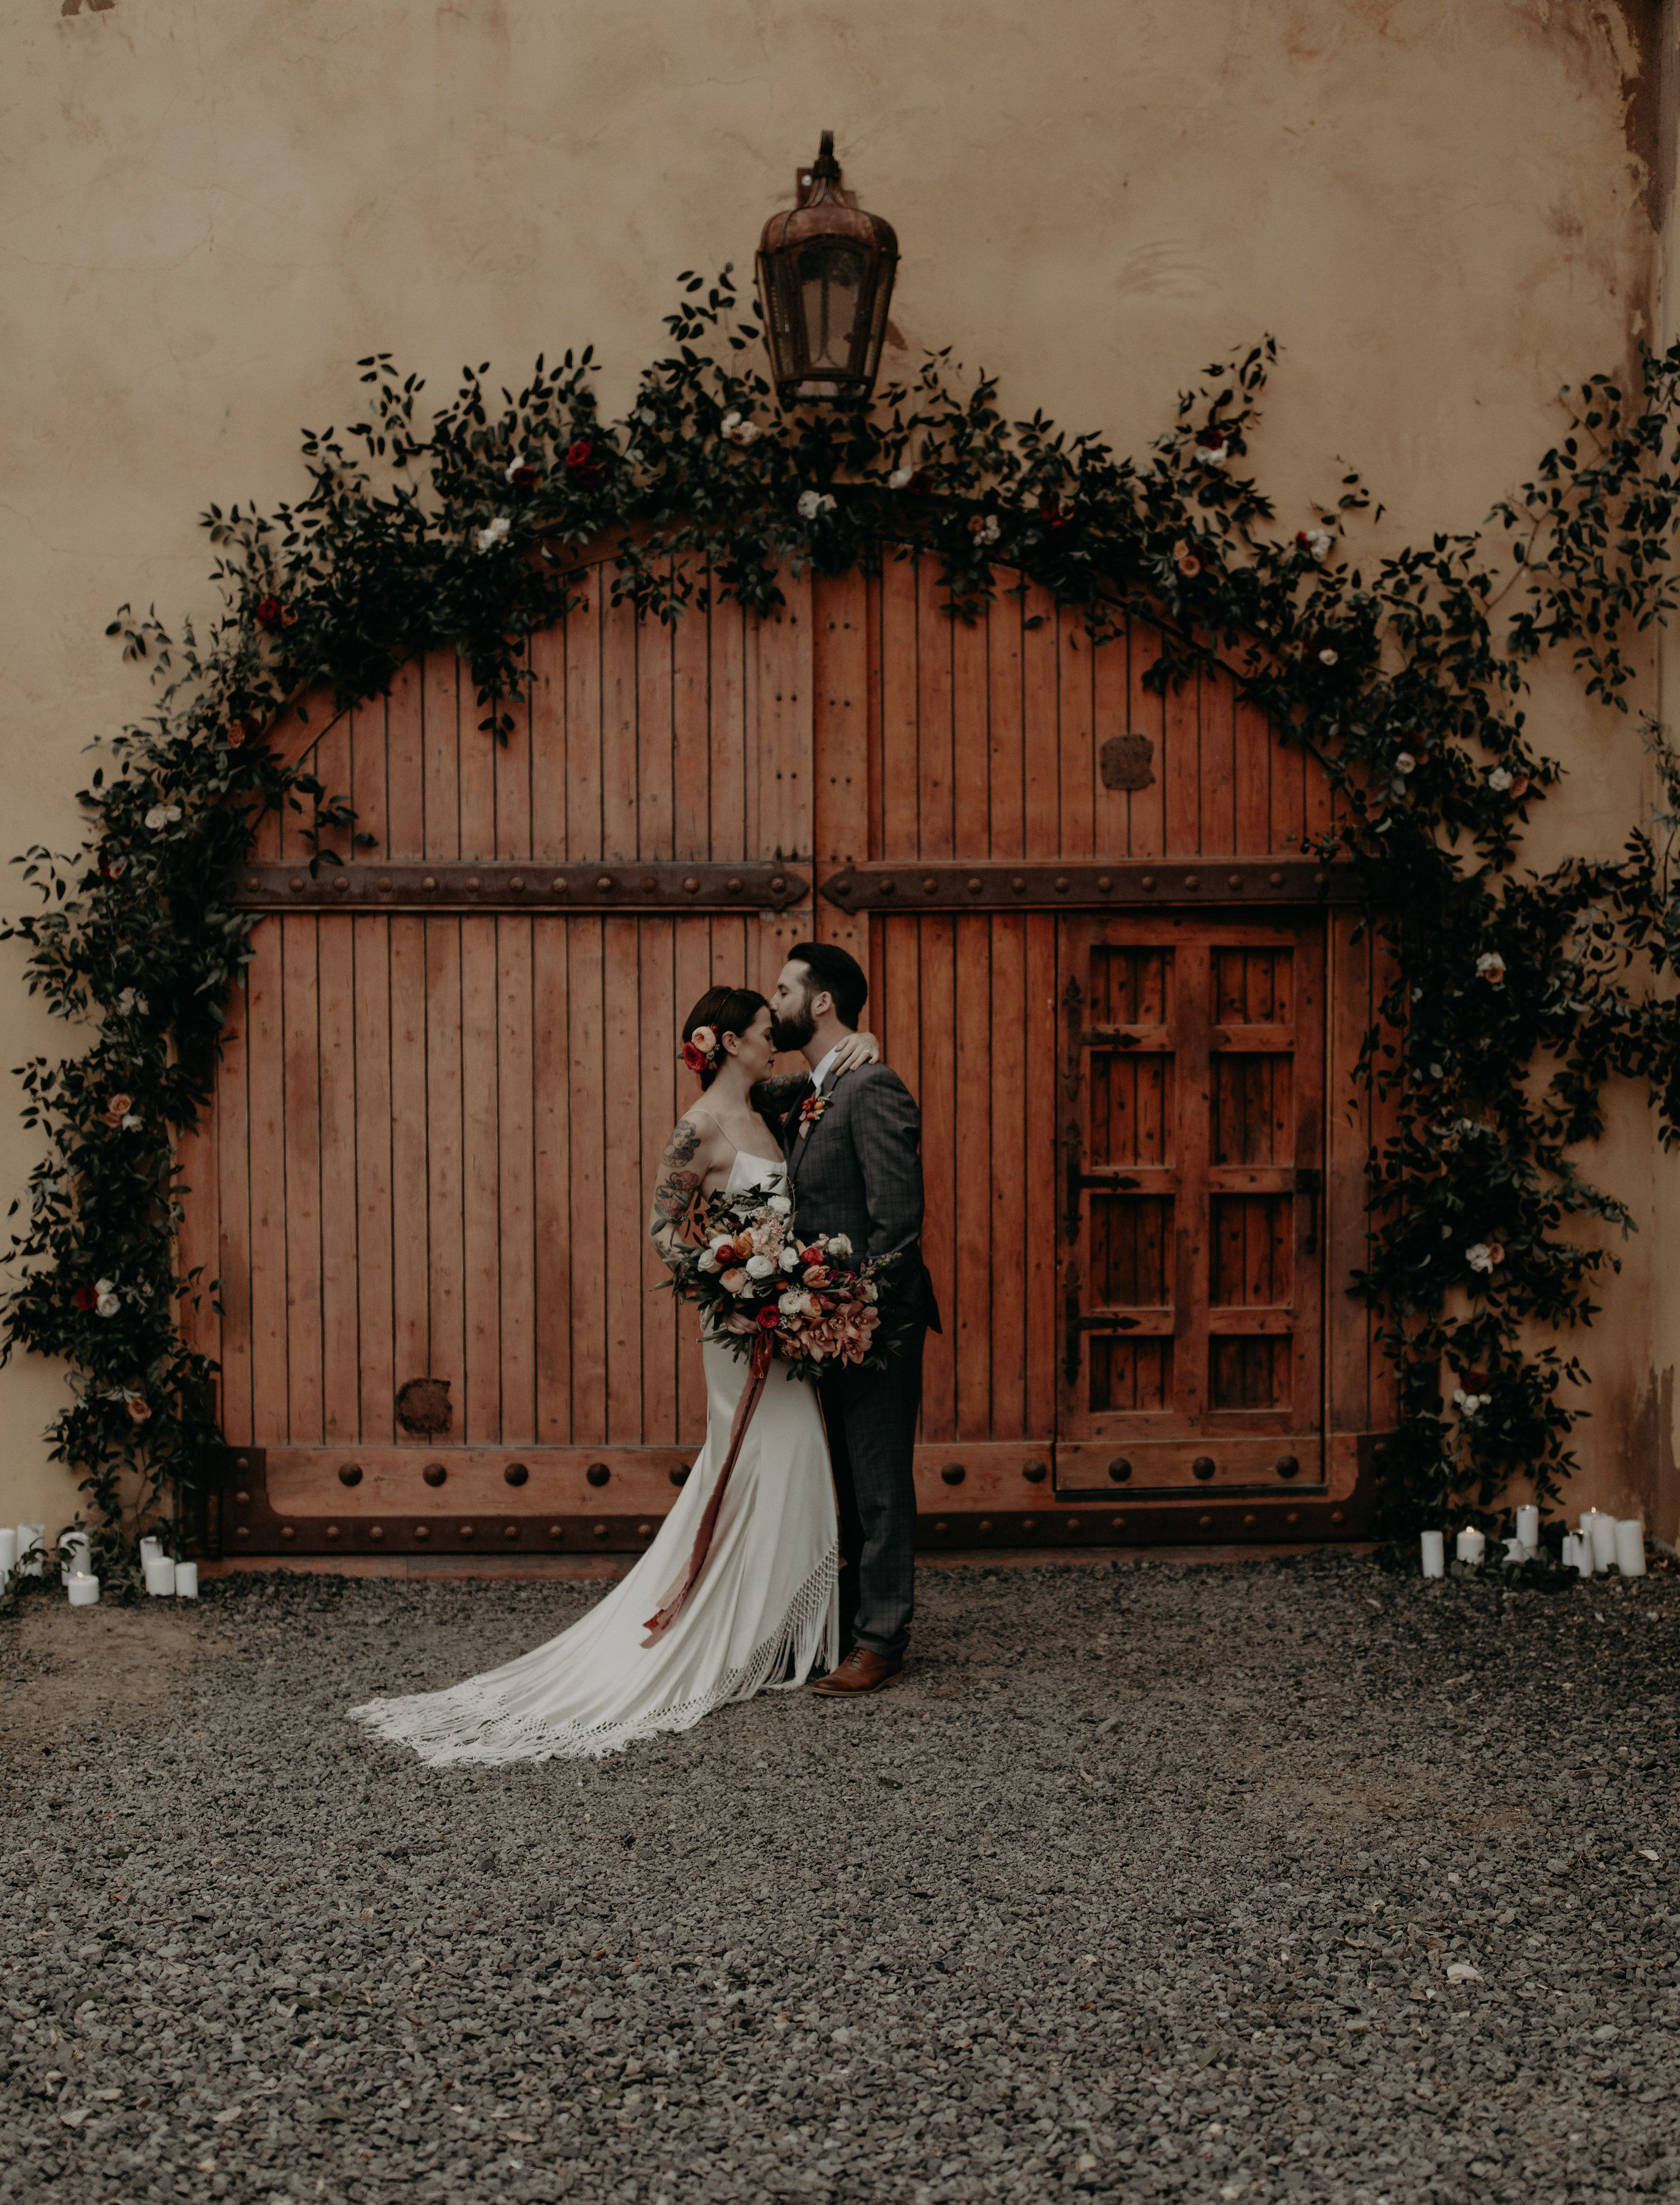 Ranch At The Canyons ranch at the canyons | night wedding photos, wedding photos